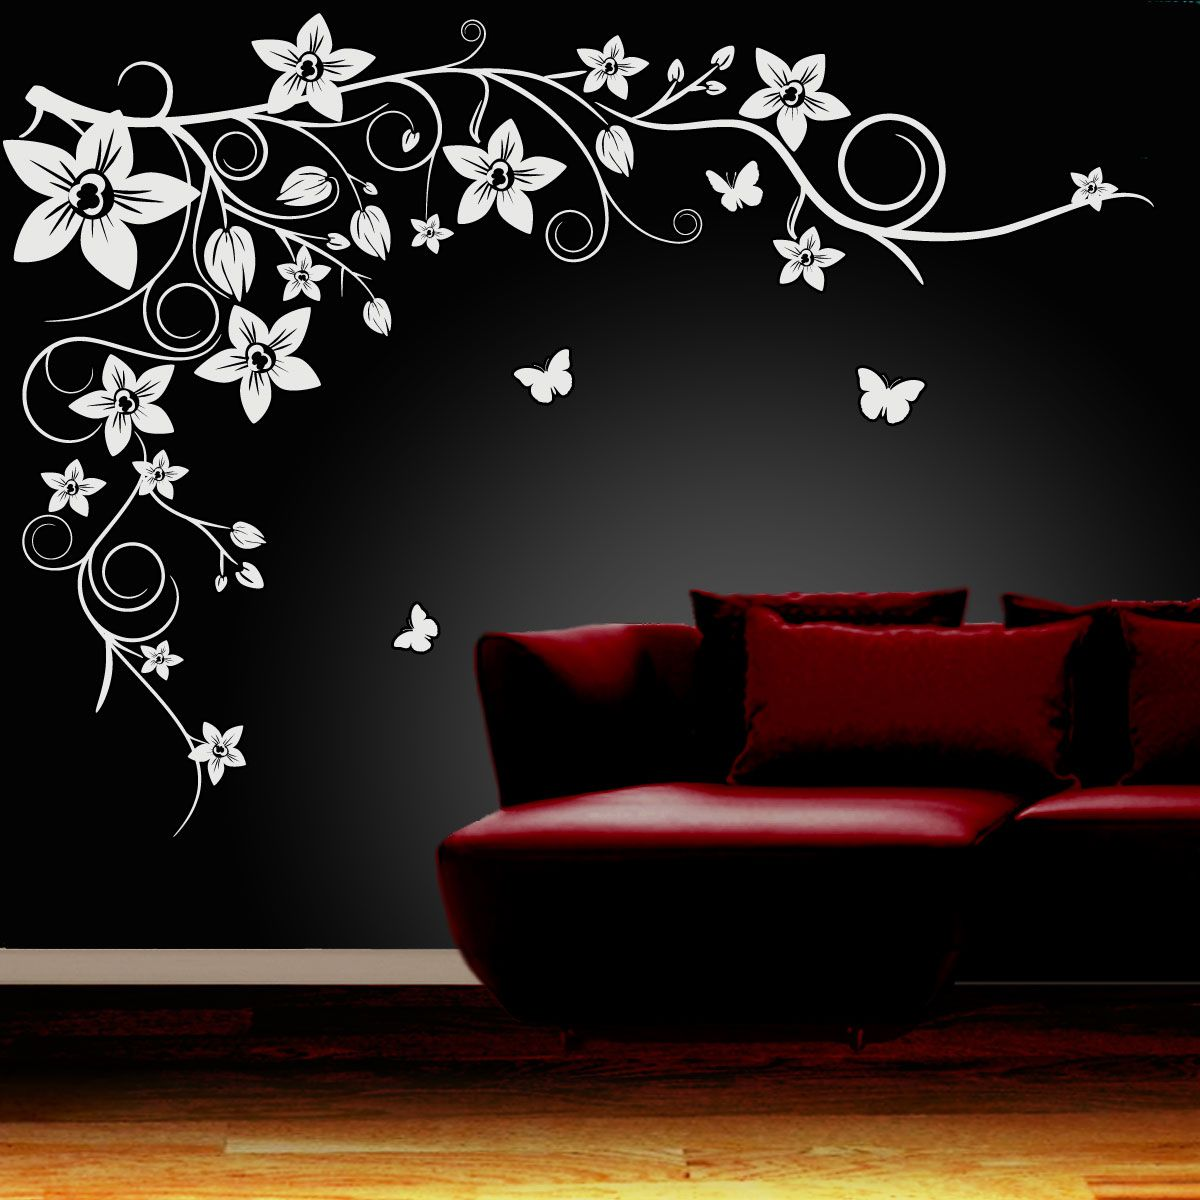 Wall Art Ideas Design Black Flower Wall Art Simple Themes - Custom vinyl wall decals flowers